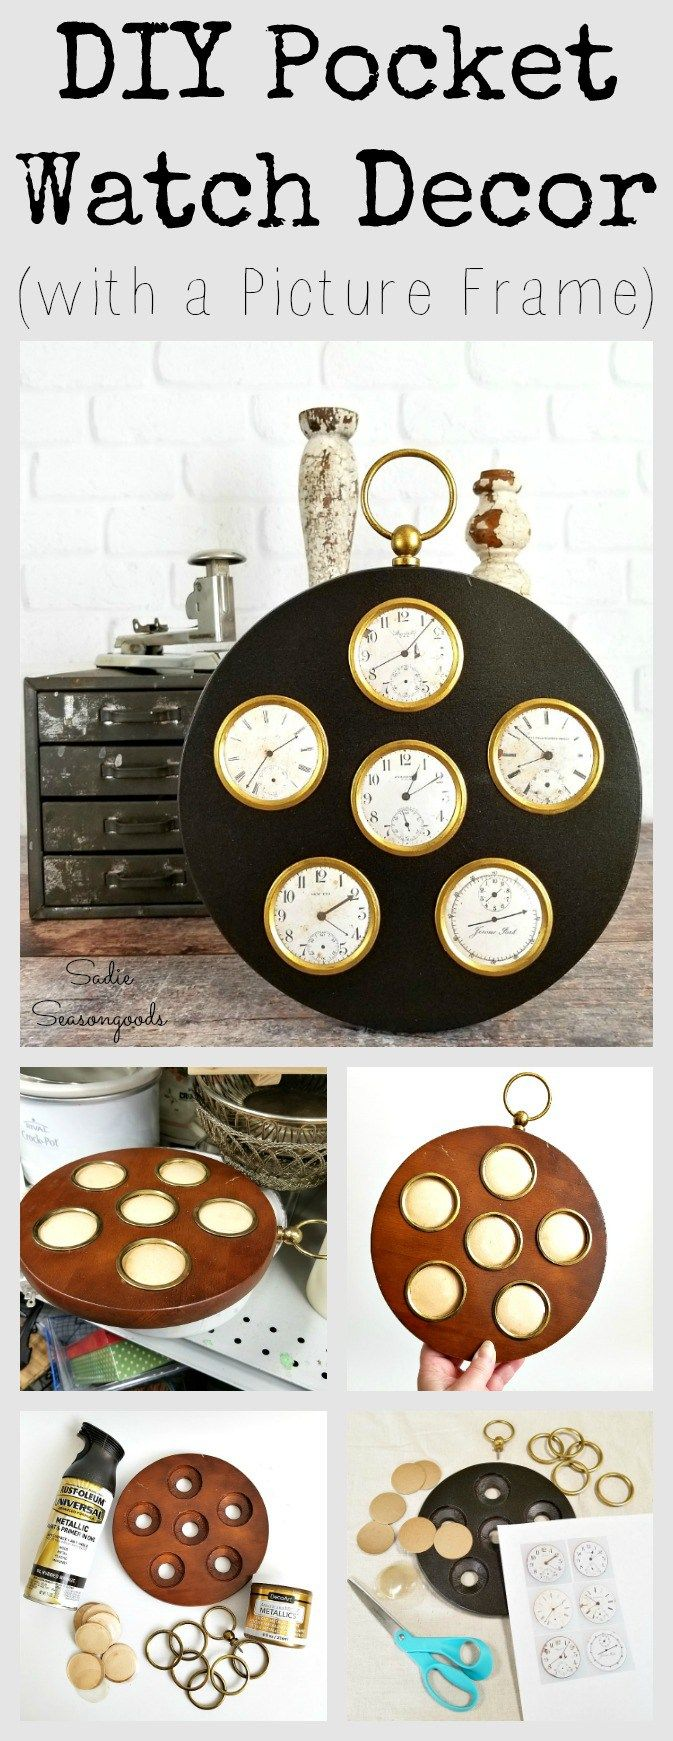 94 best clocks images on pinterest the hours wall clocks and clock diy industrial steampunk pocket watch decor from a picture frame jeuxipadfo Image collections